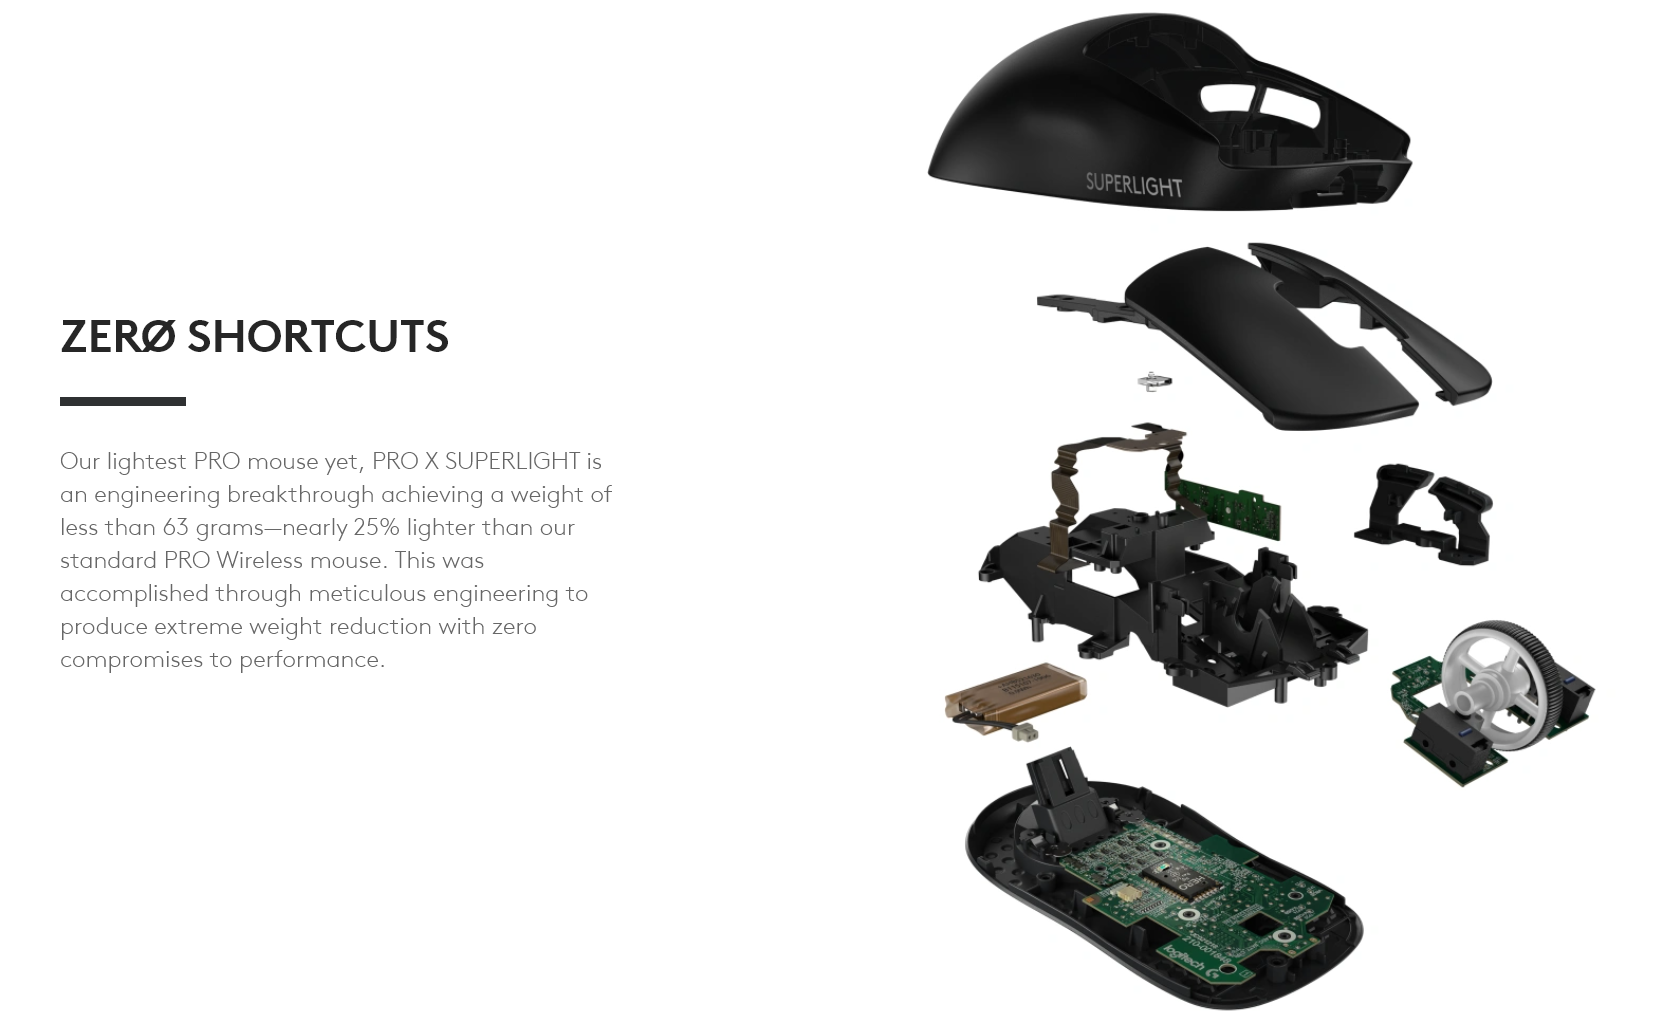 Our lightest PRO mouse yet, PRO X SUPERLIGHT is an engineering breakthrough achieving a weight of less than 63 grams—nearly 25% lighter than our standard PRO Wireless mouse. This was accomplished through meticulous engineering to produce extreme weight reduction with zero compromises to performance.